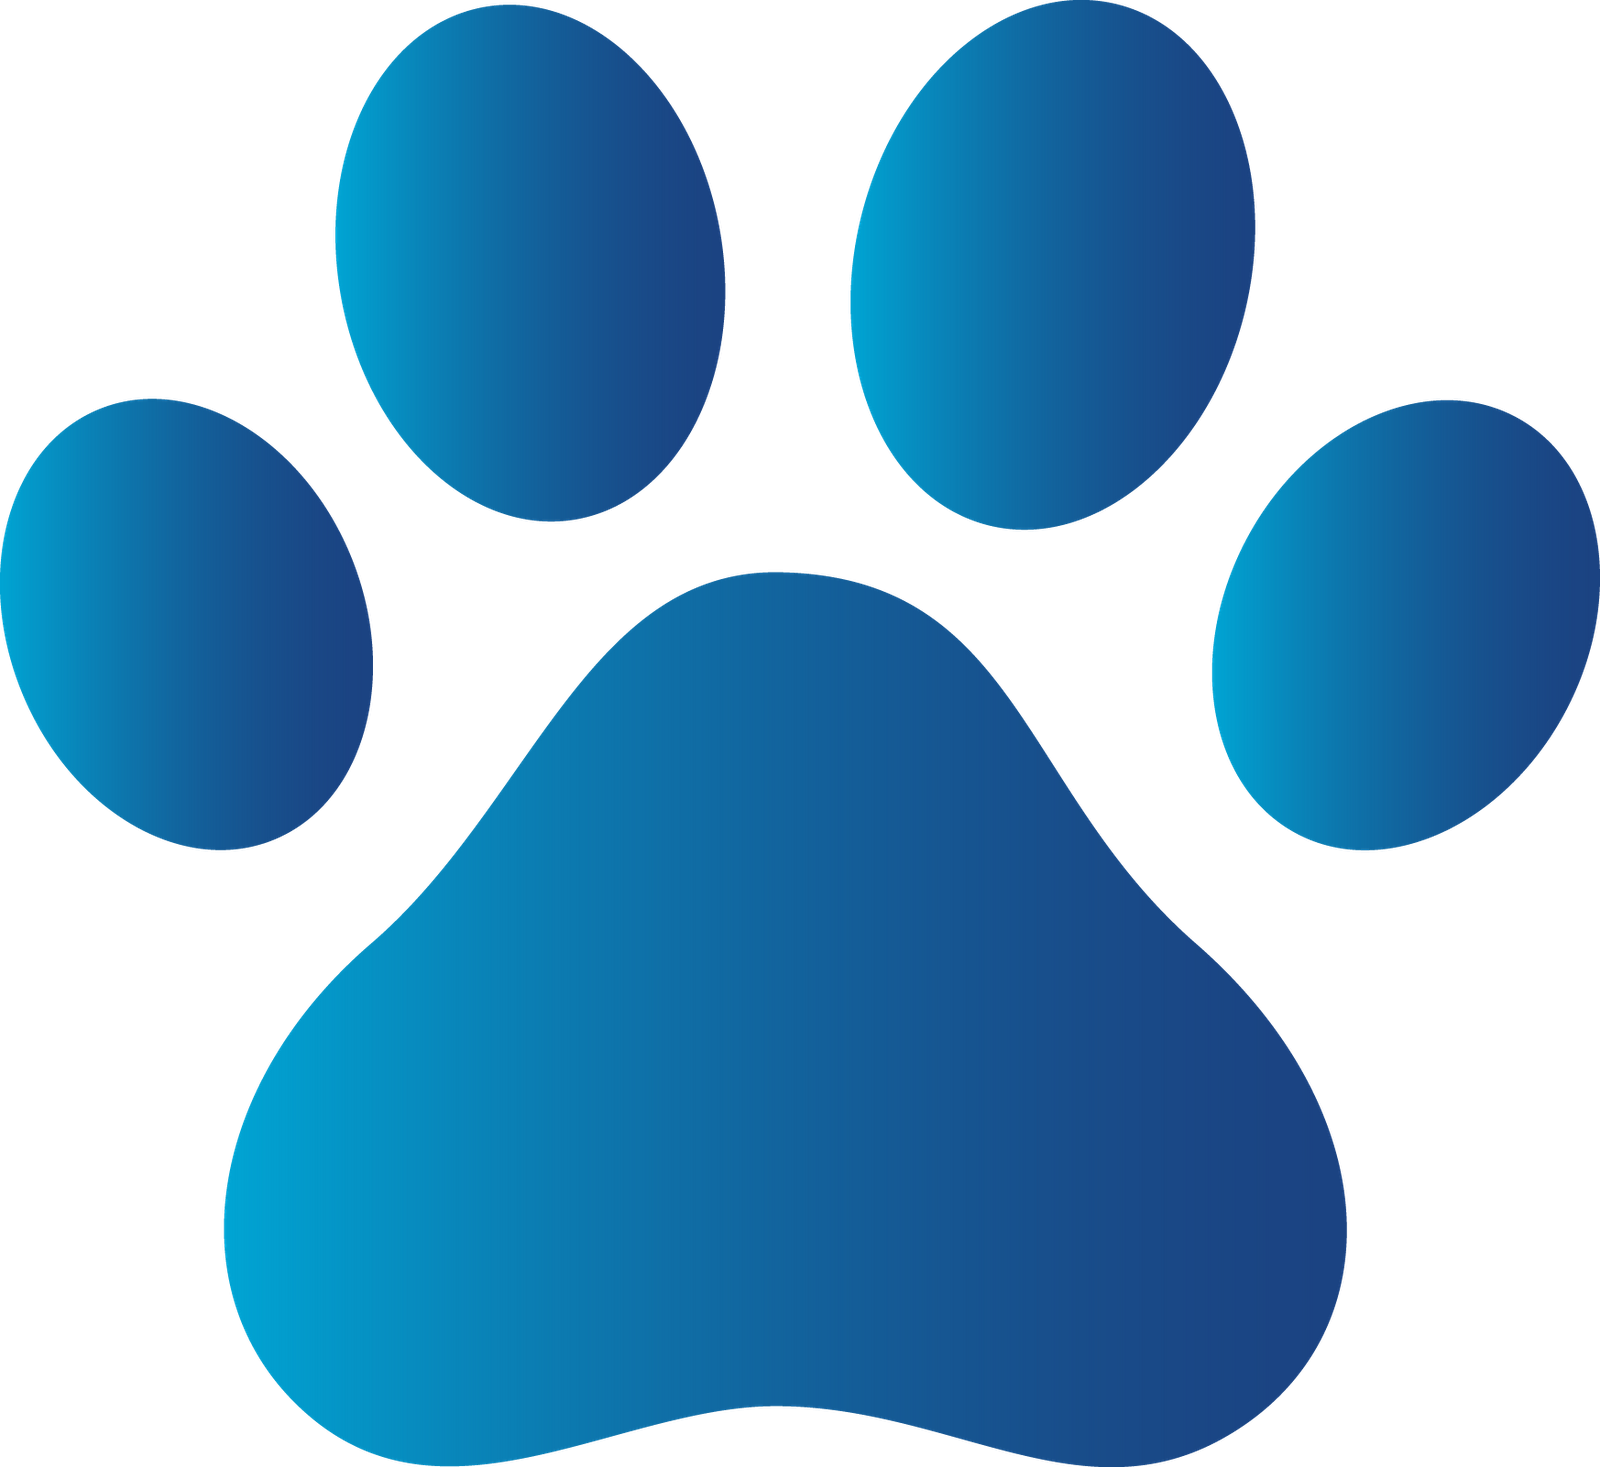 Pawprint clipart footprint. Dog paw group blue